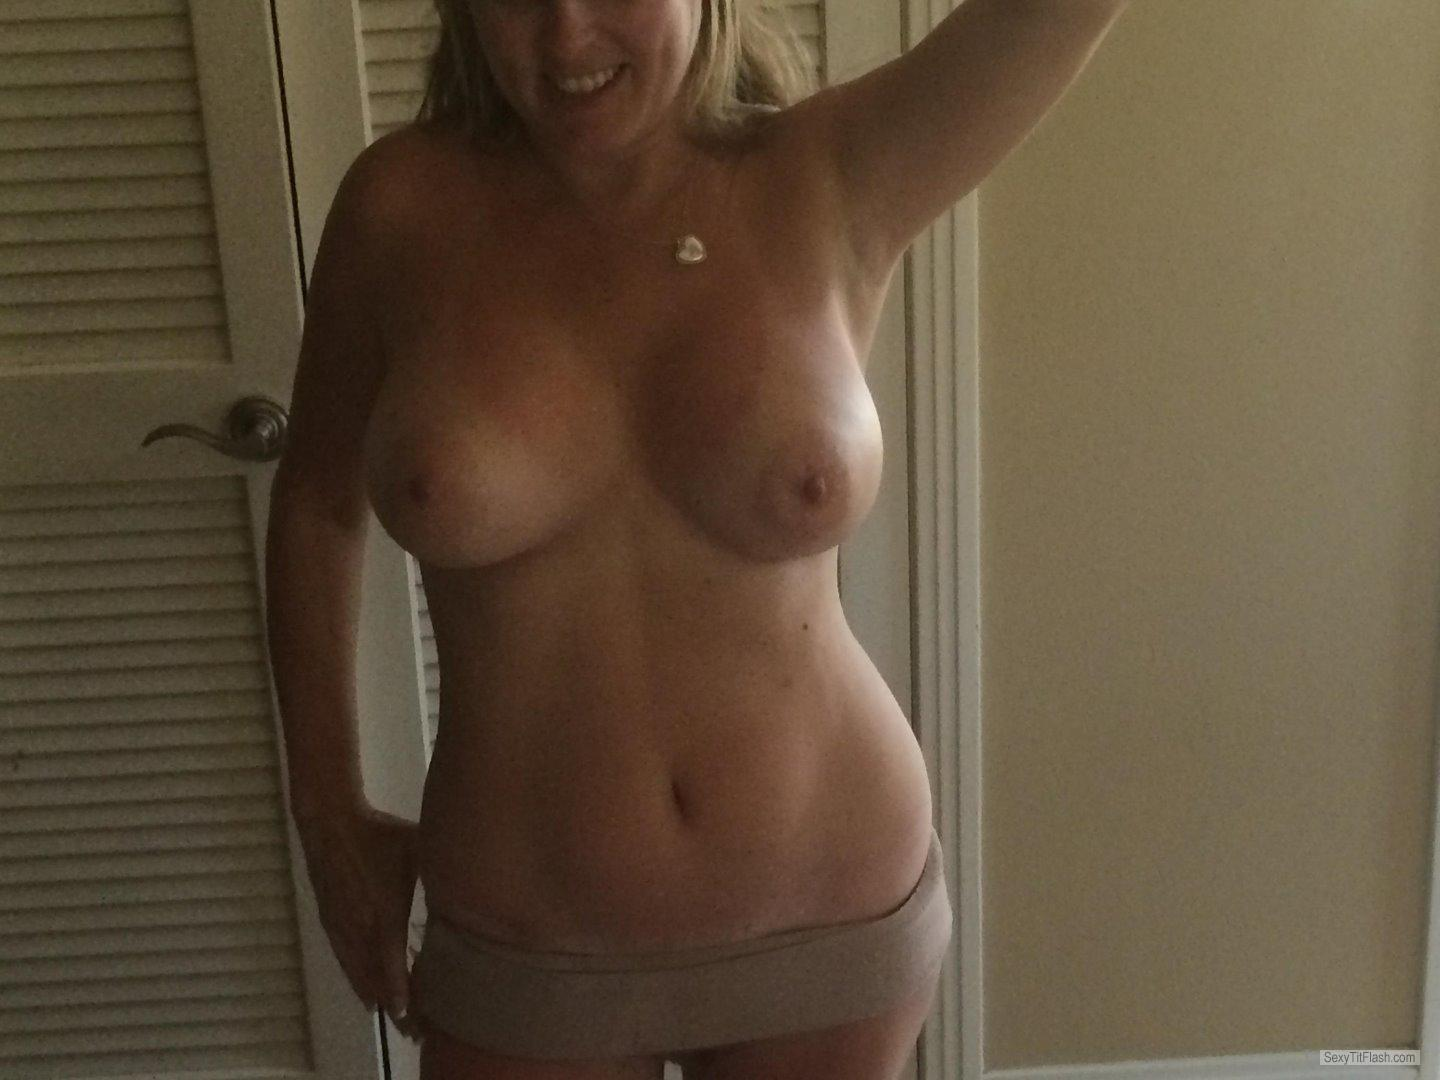 Big Tits Of My Girlfriend Selfie by Pslincs